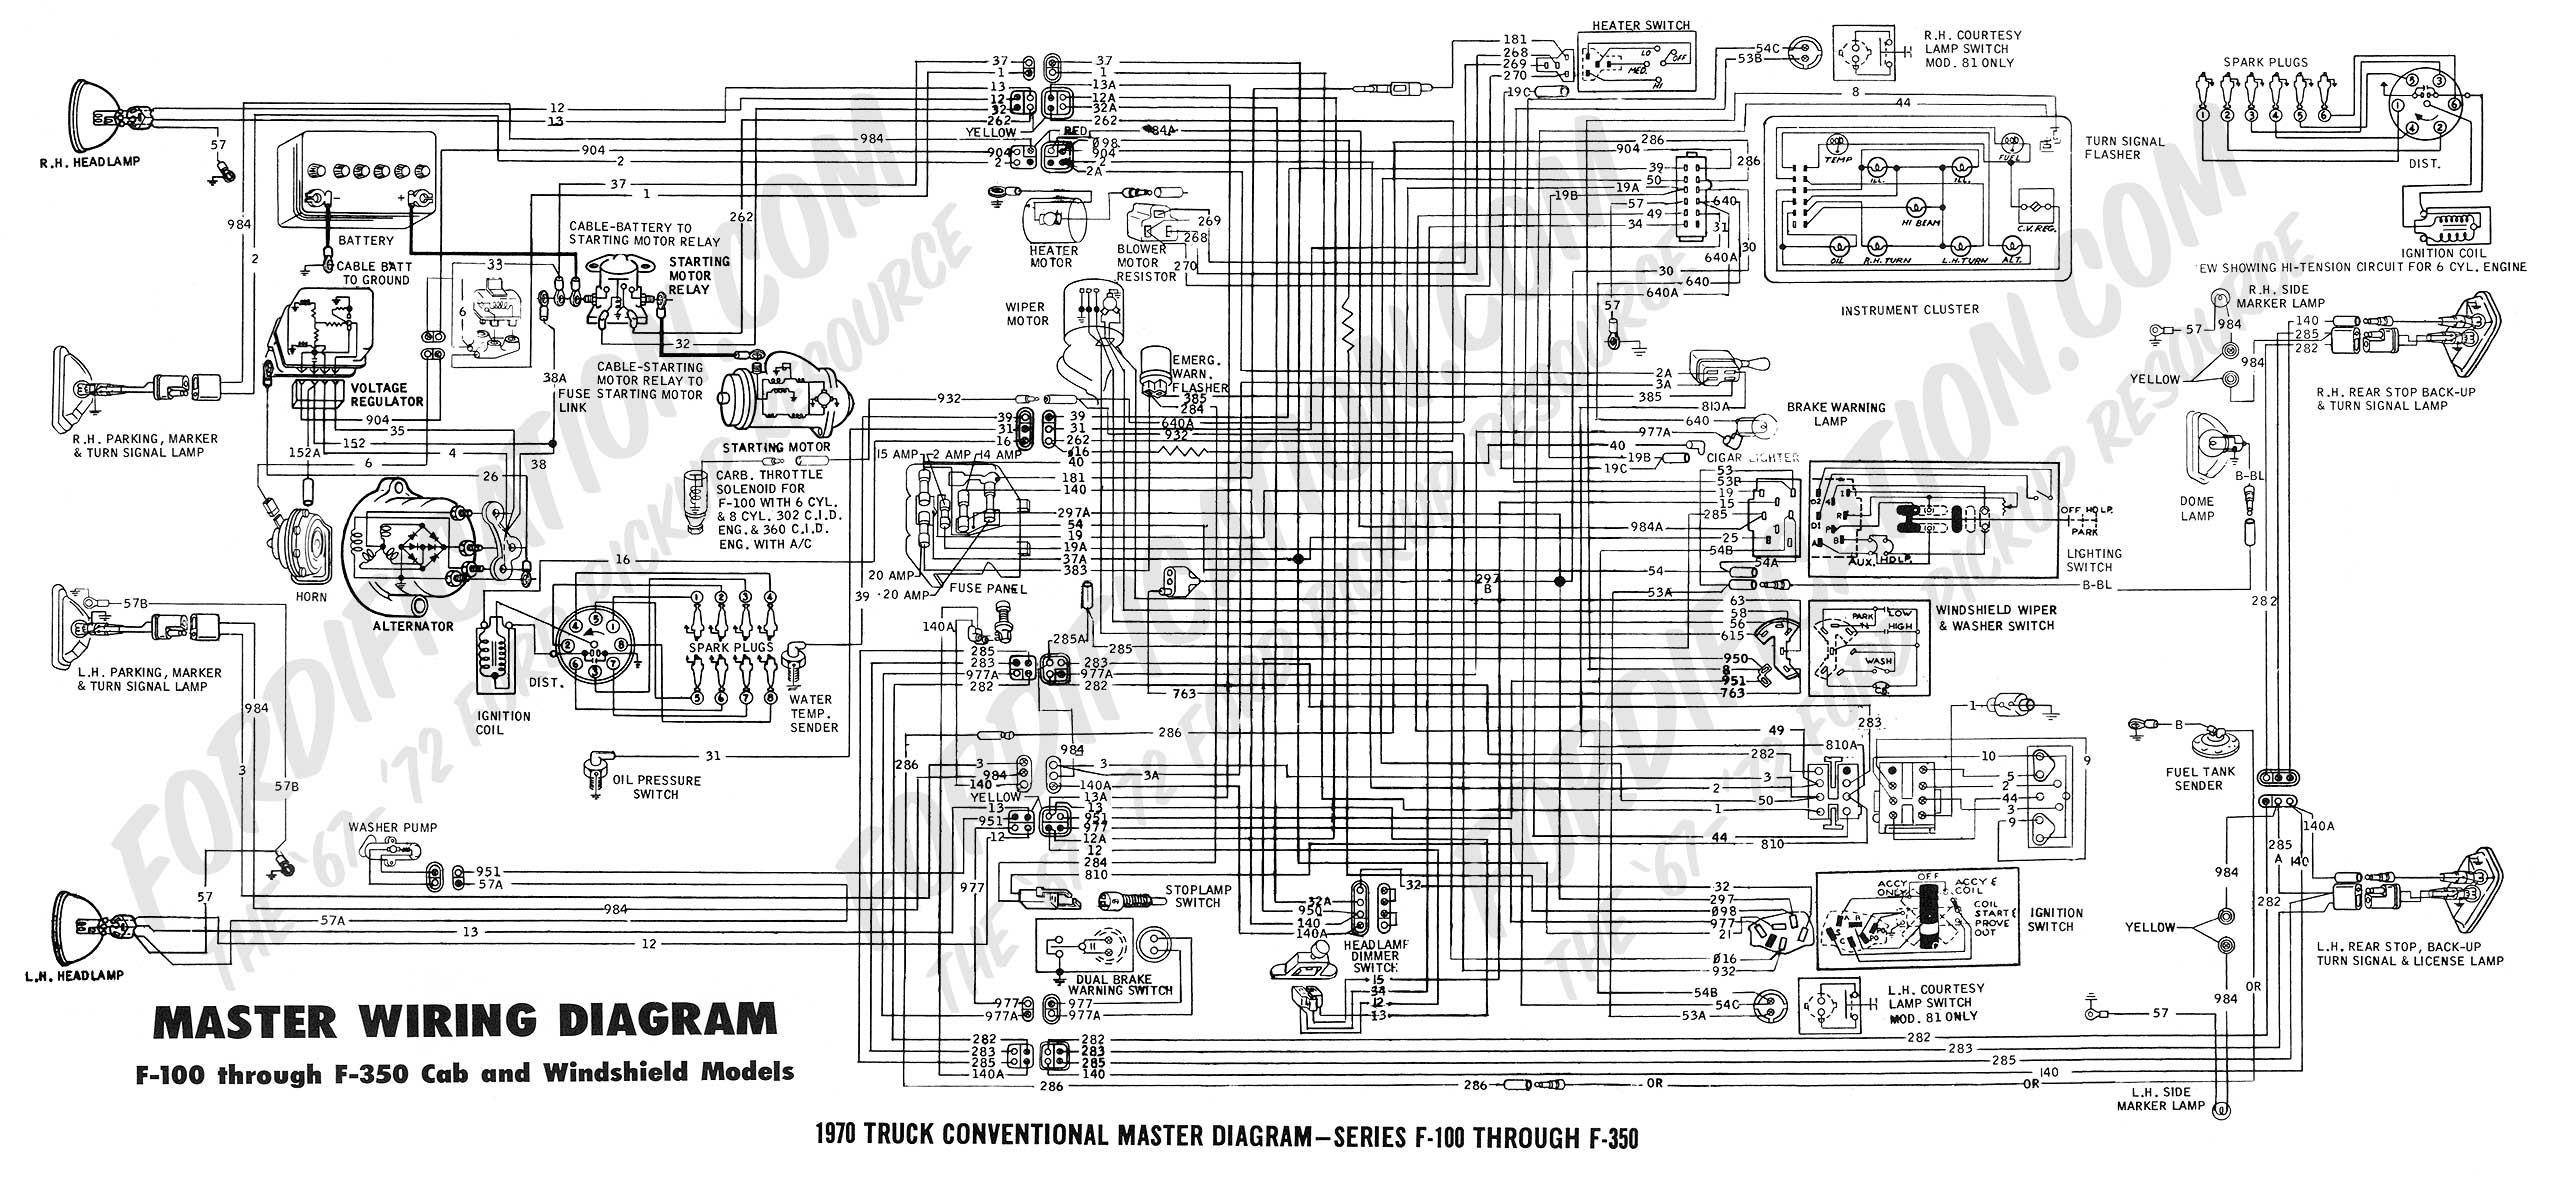 ford pinto wiring diagram ford van wiring diagram ford wiring diagrams